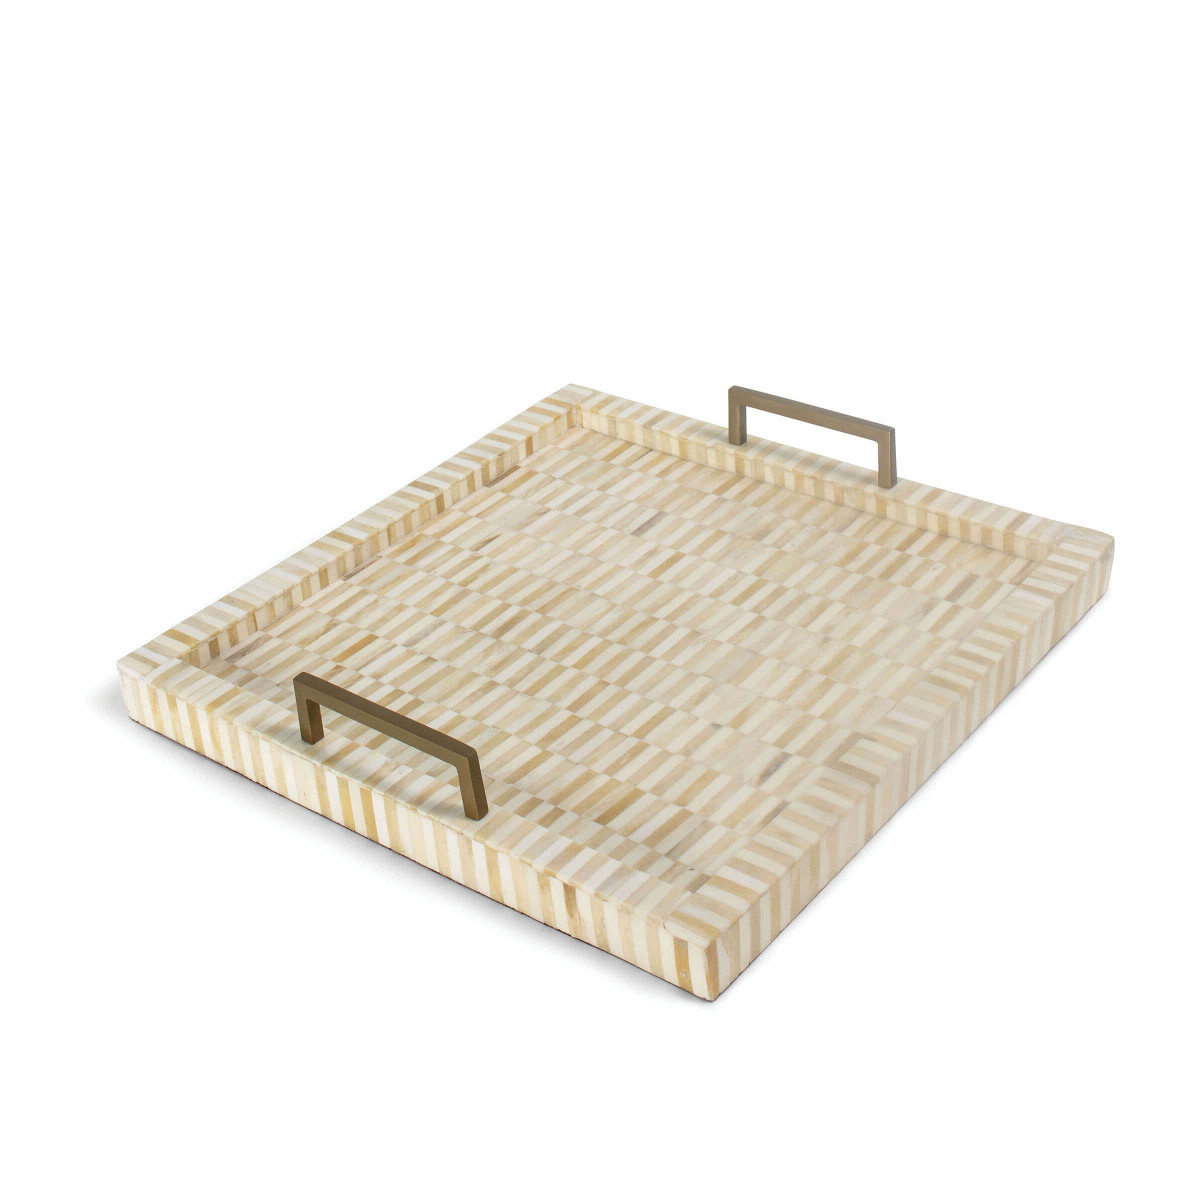 Bone and Brass Square Tray-$229.00